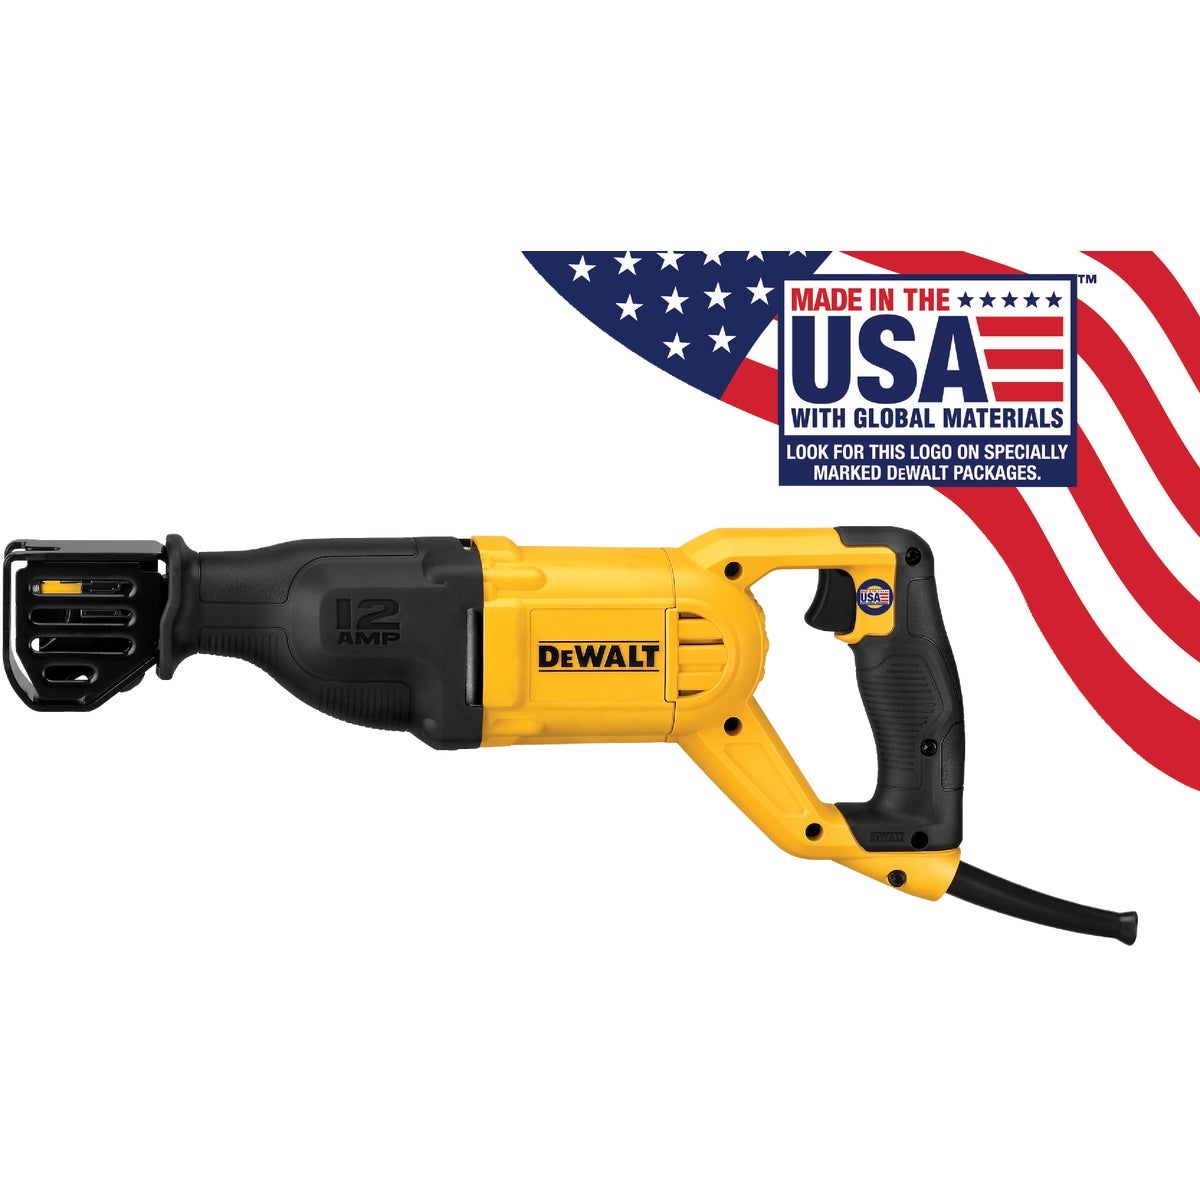 10A RECIPROCATING SAW - DW304PK by DeWalt